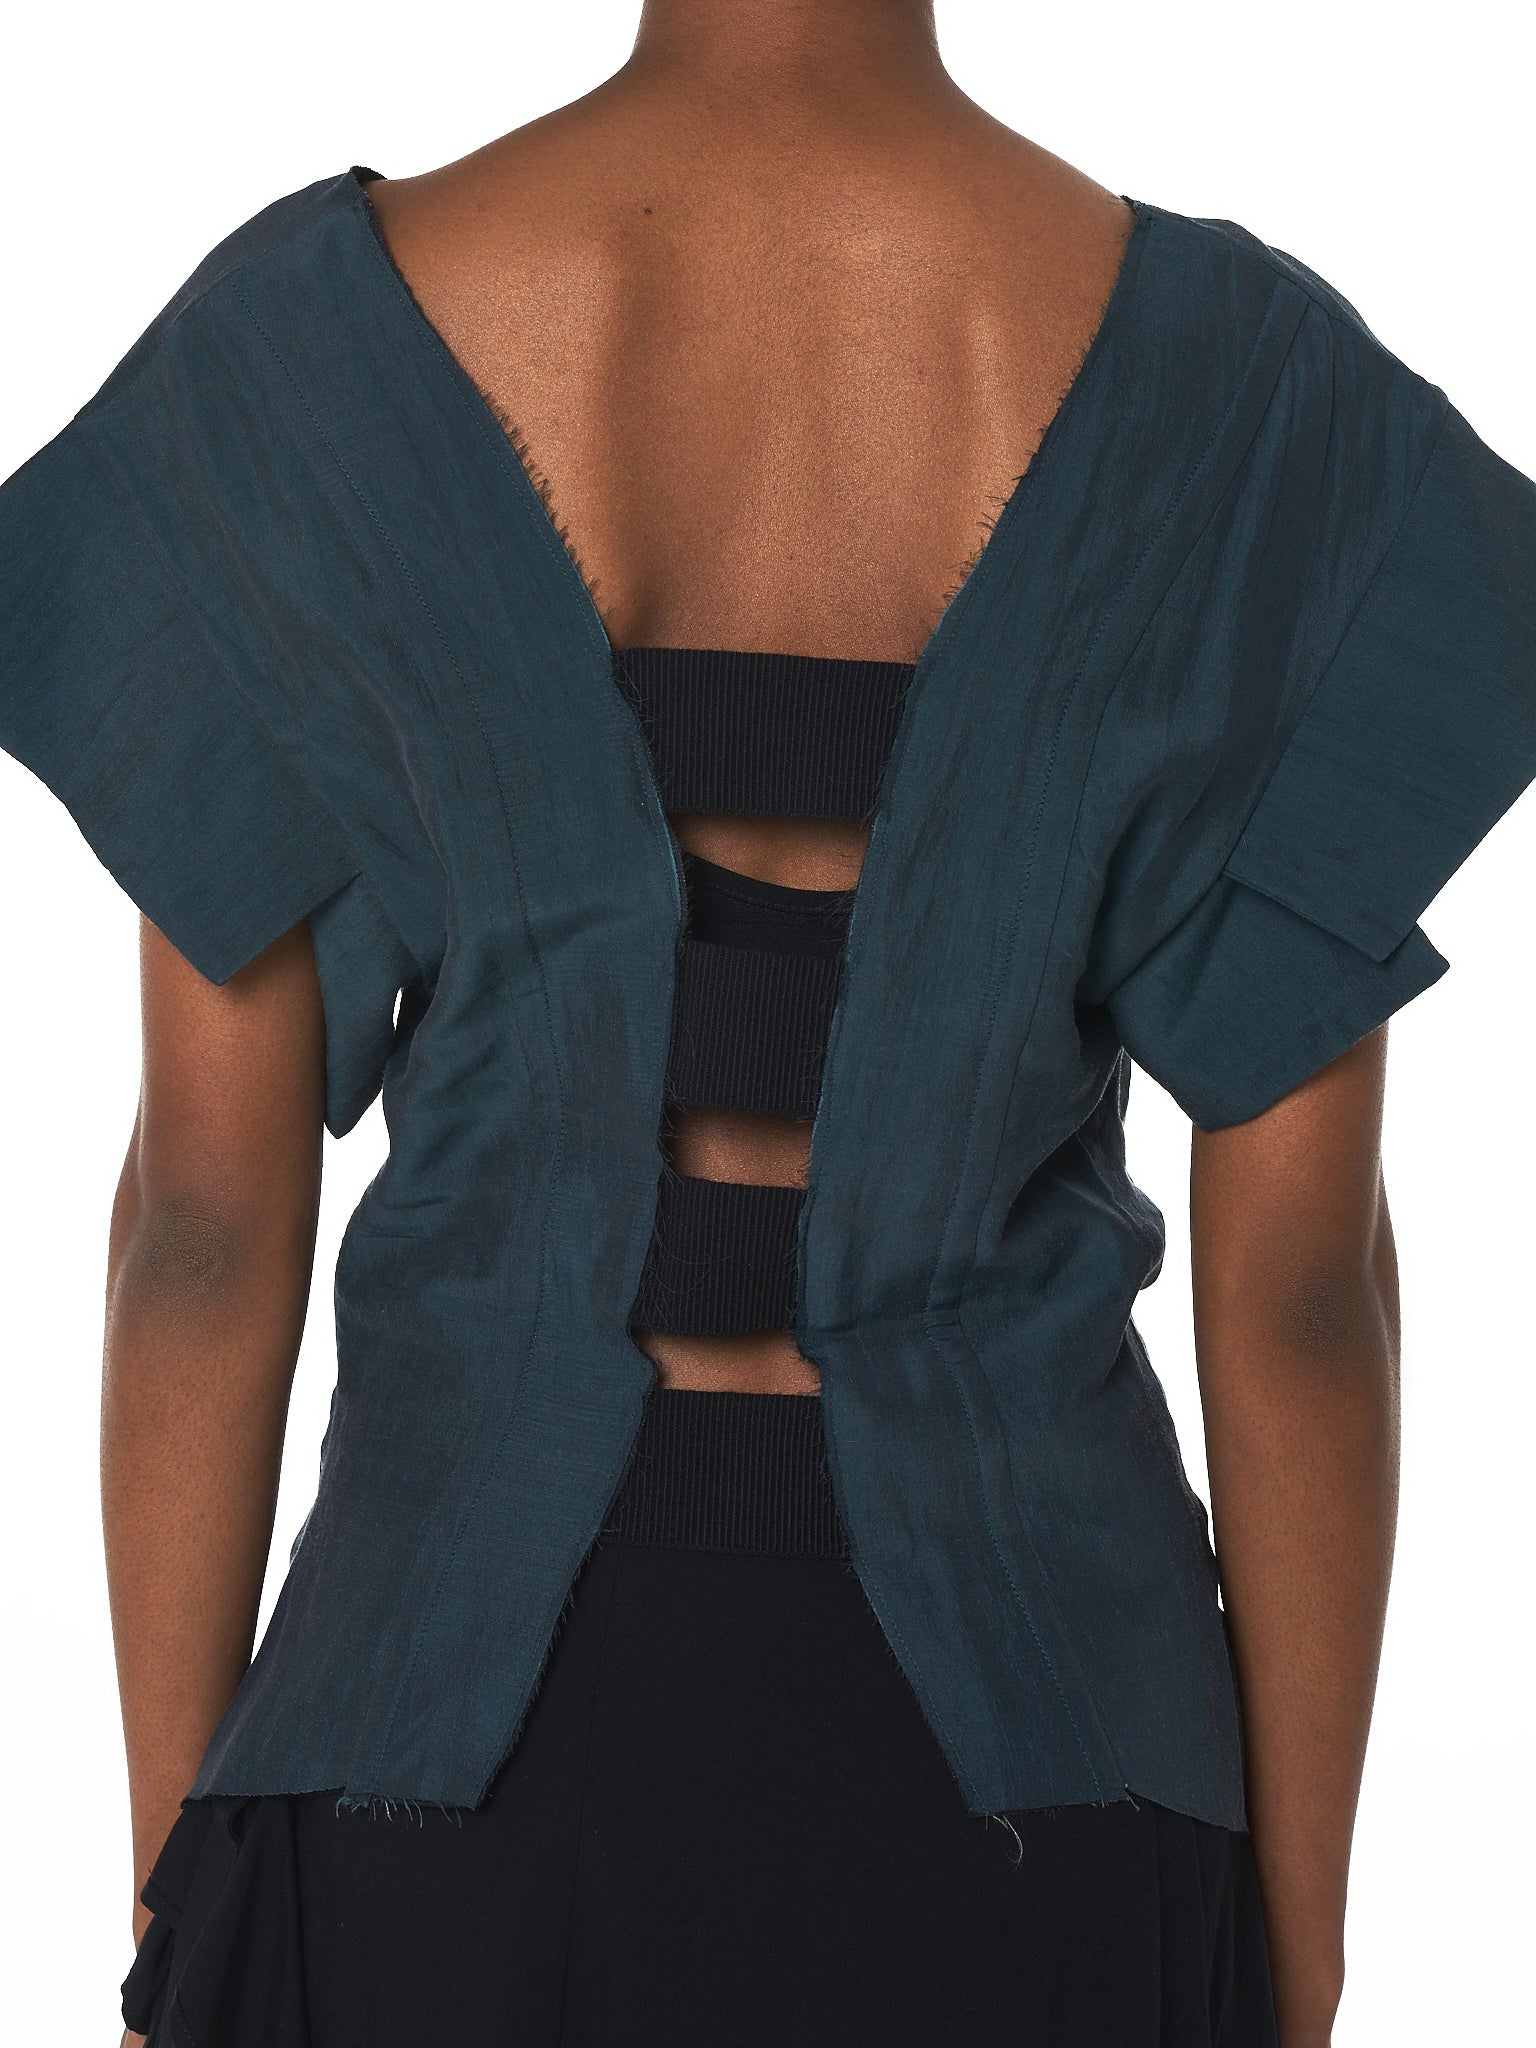 Alessandra Marchi Top - Hlorenzo Detail 2